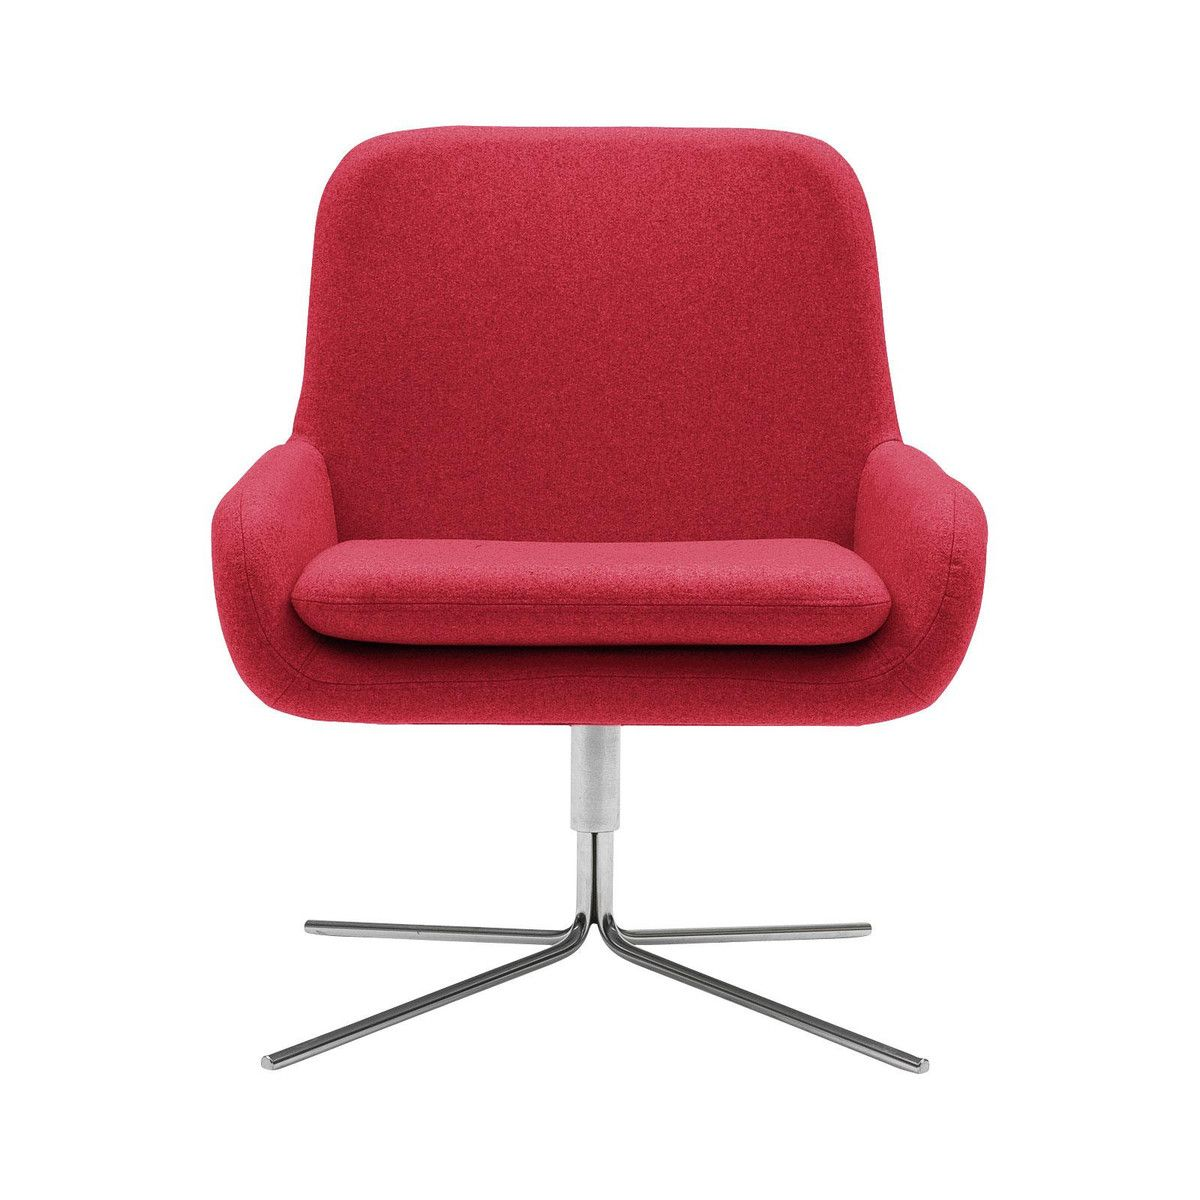 Drehsessel Rot Softline Coco Drehsessel Rot Filz 622 Wohnung Swivel Chair